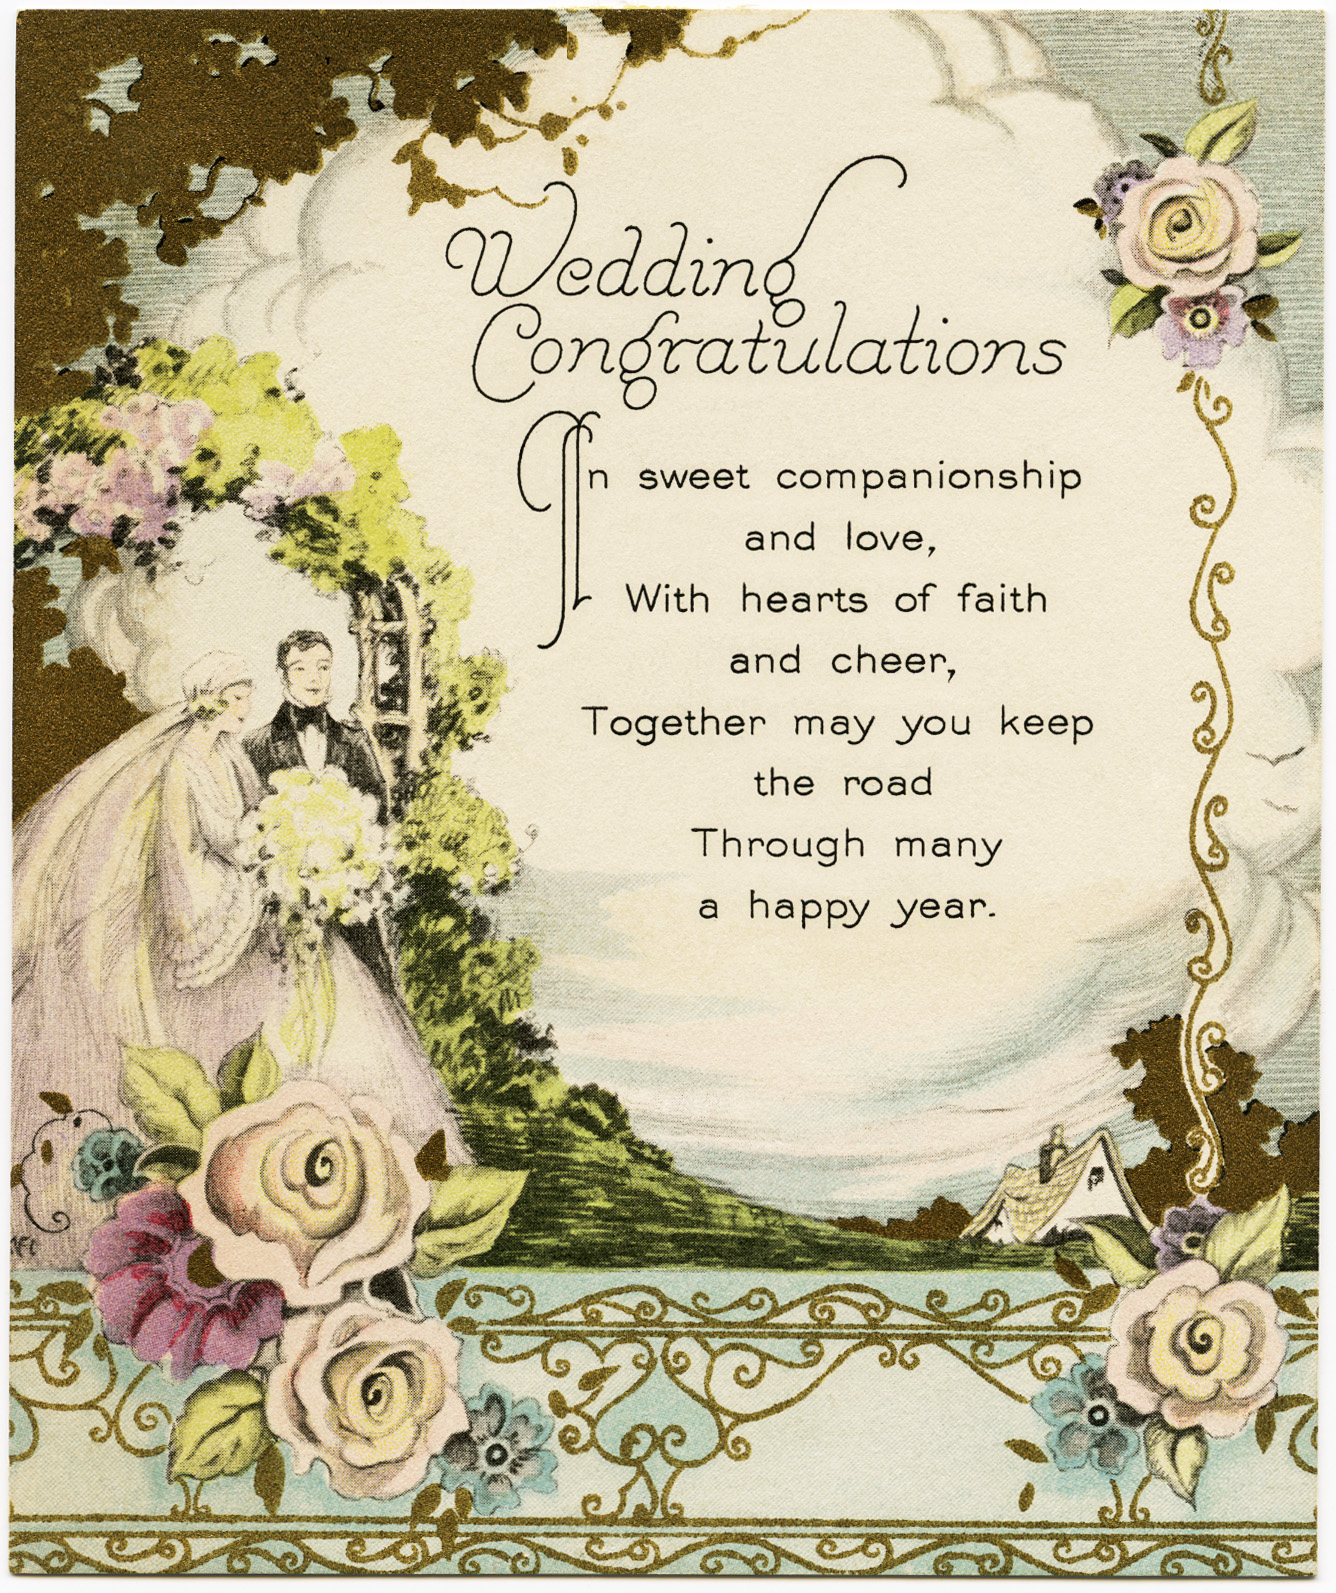 wedding congratulations quotes quotesgram With images of wedding congratulation cards